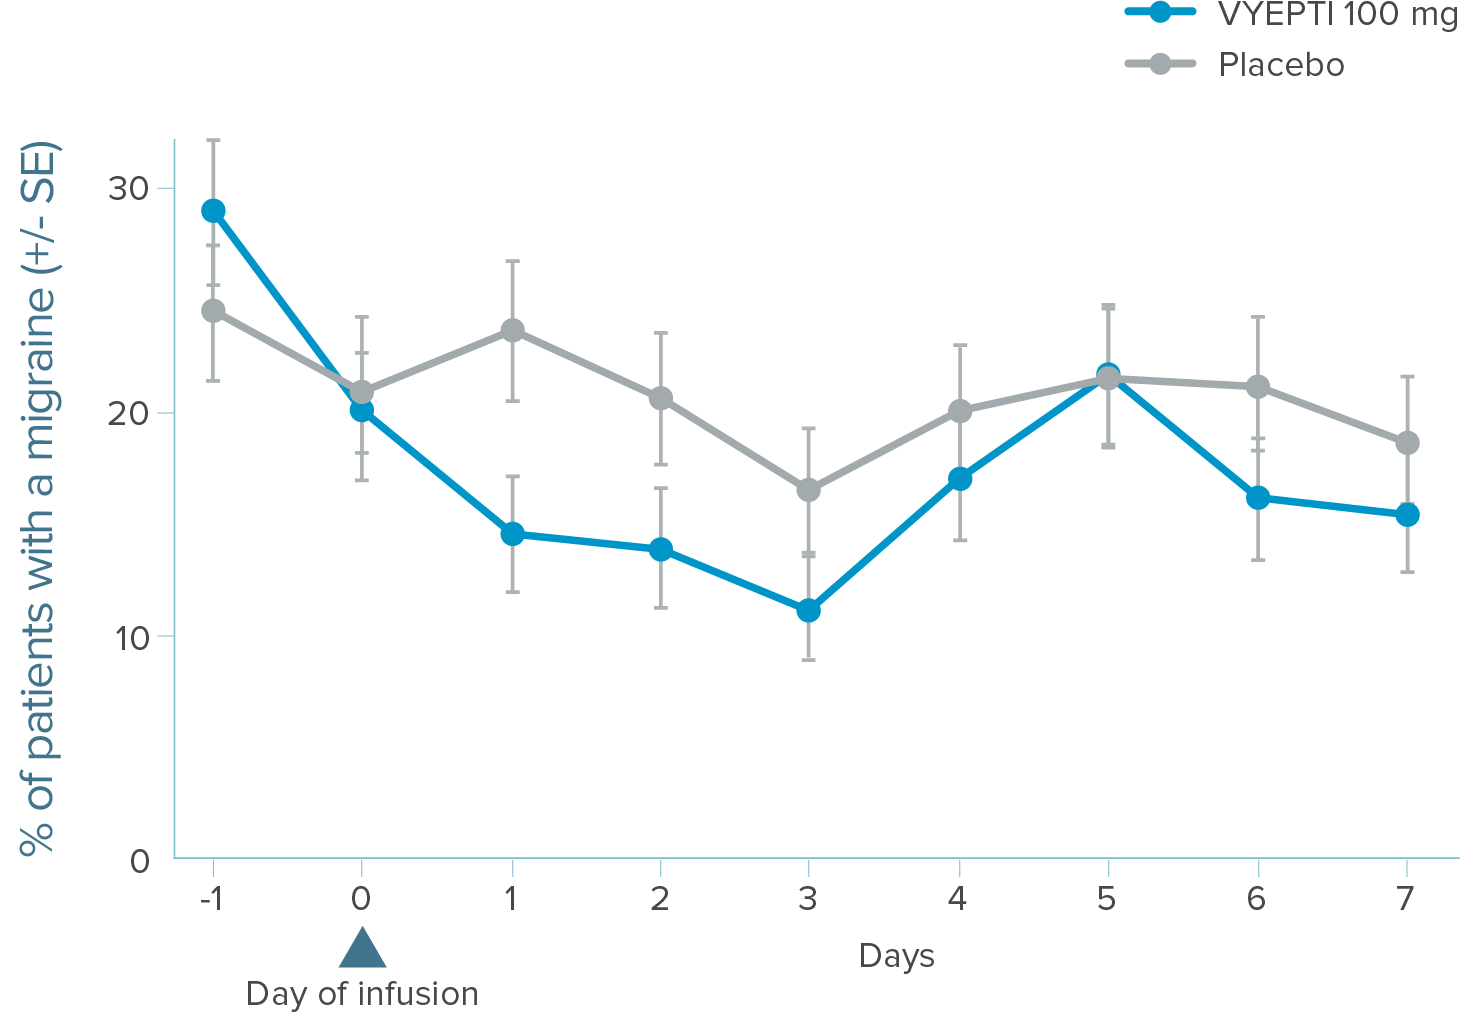 Graph showing that fewer patients treated with VYEPTI 100 mg experienced a migraine during the first 7 days of treatment compared to placebo.